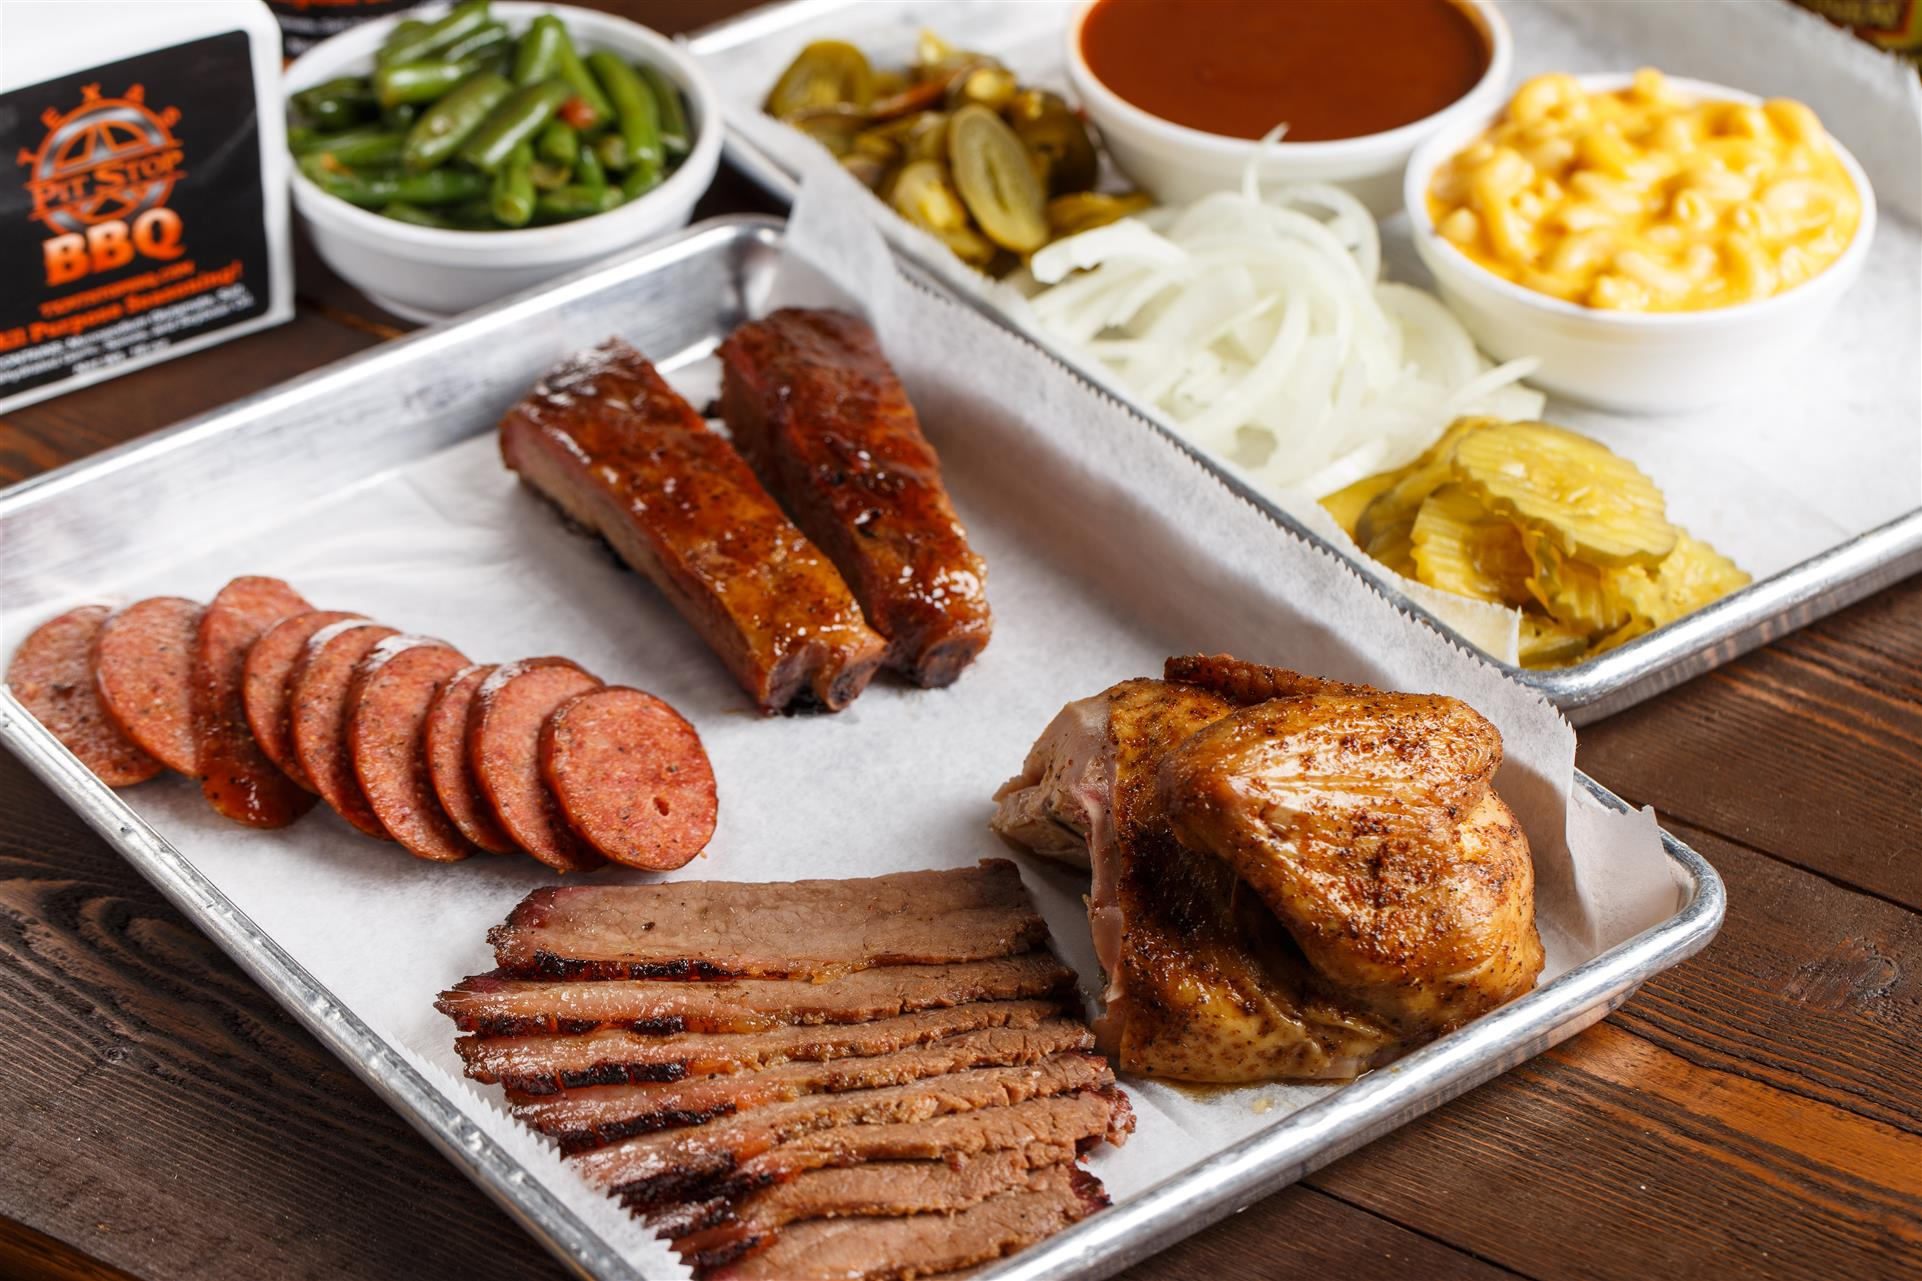 A tray of sausage, ribs, roasted BBQ chicken, and sliced brisket